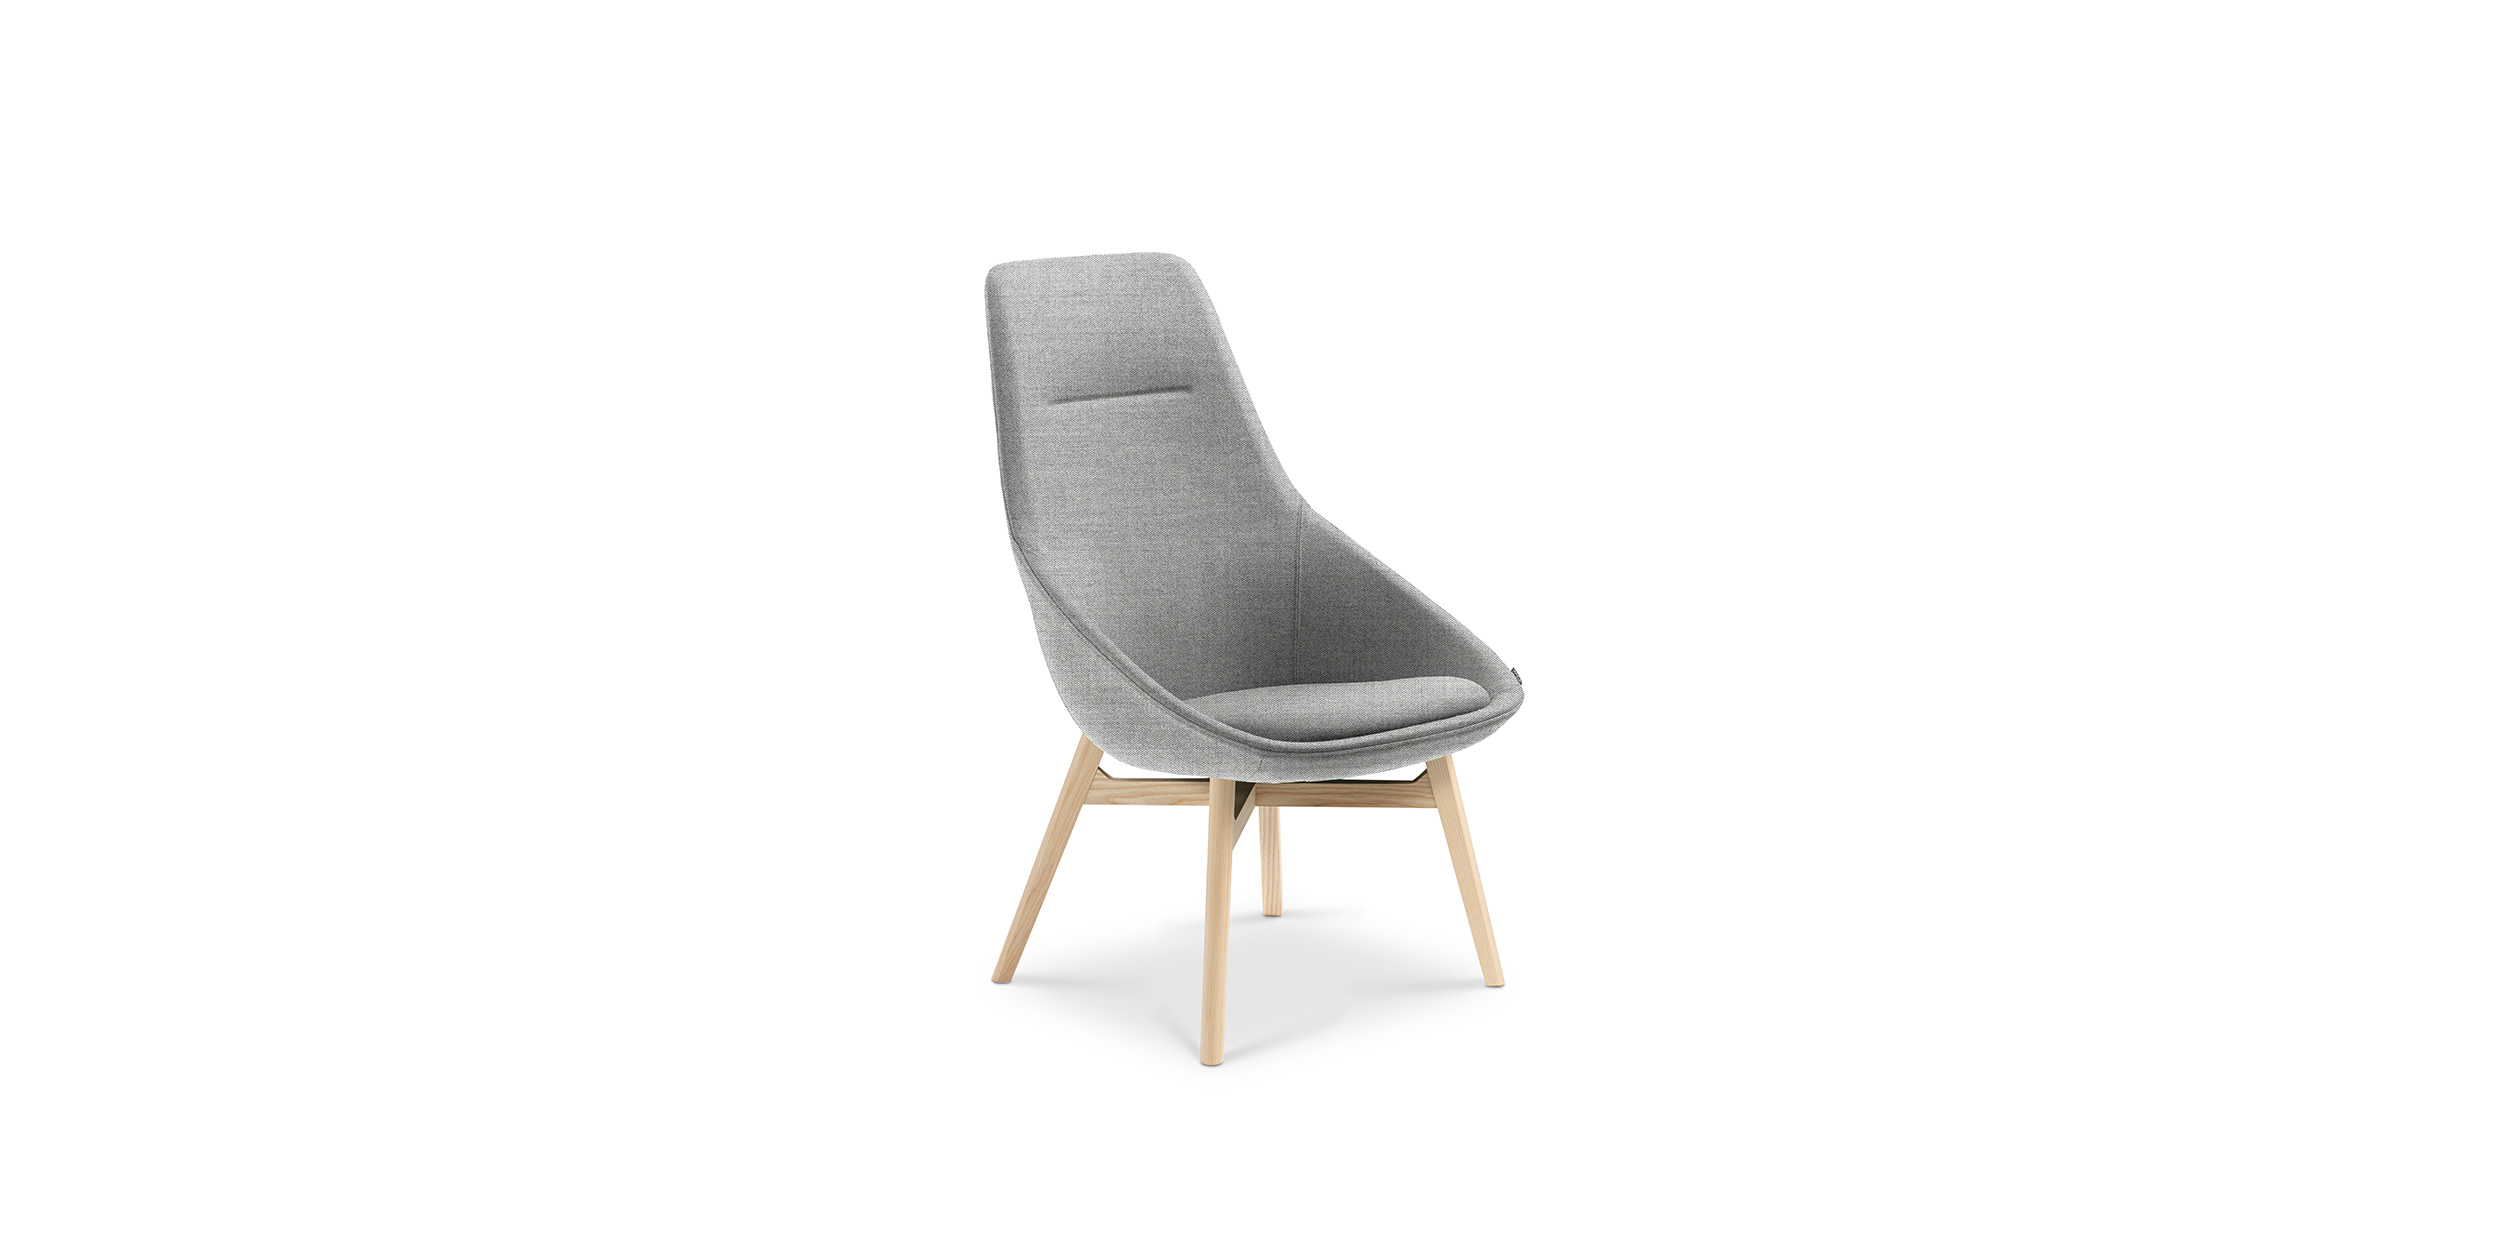 Low Comfy Chairs Ezy Wood High Chair Comfy Design By Christophe Pillet